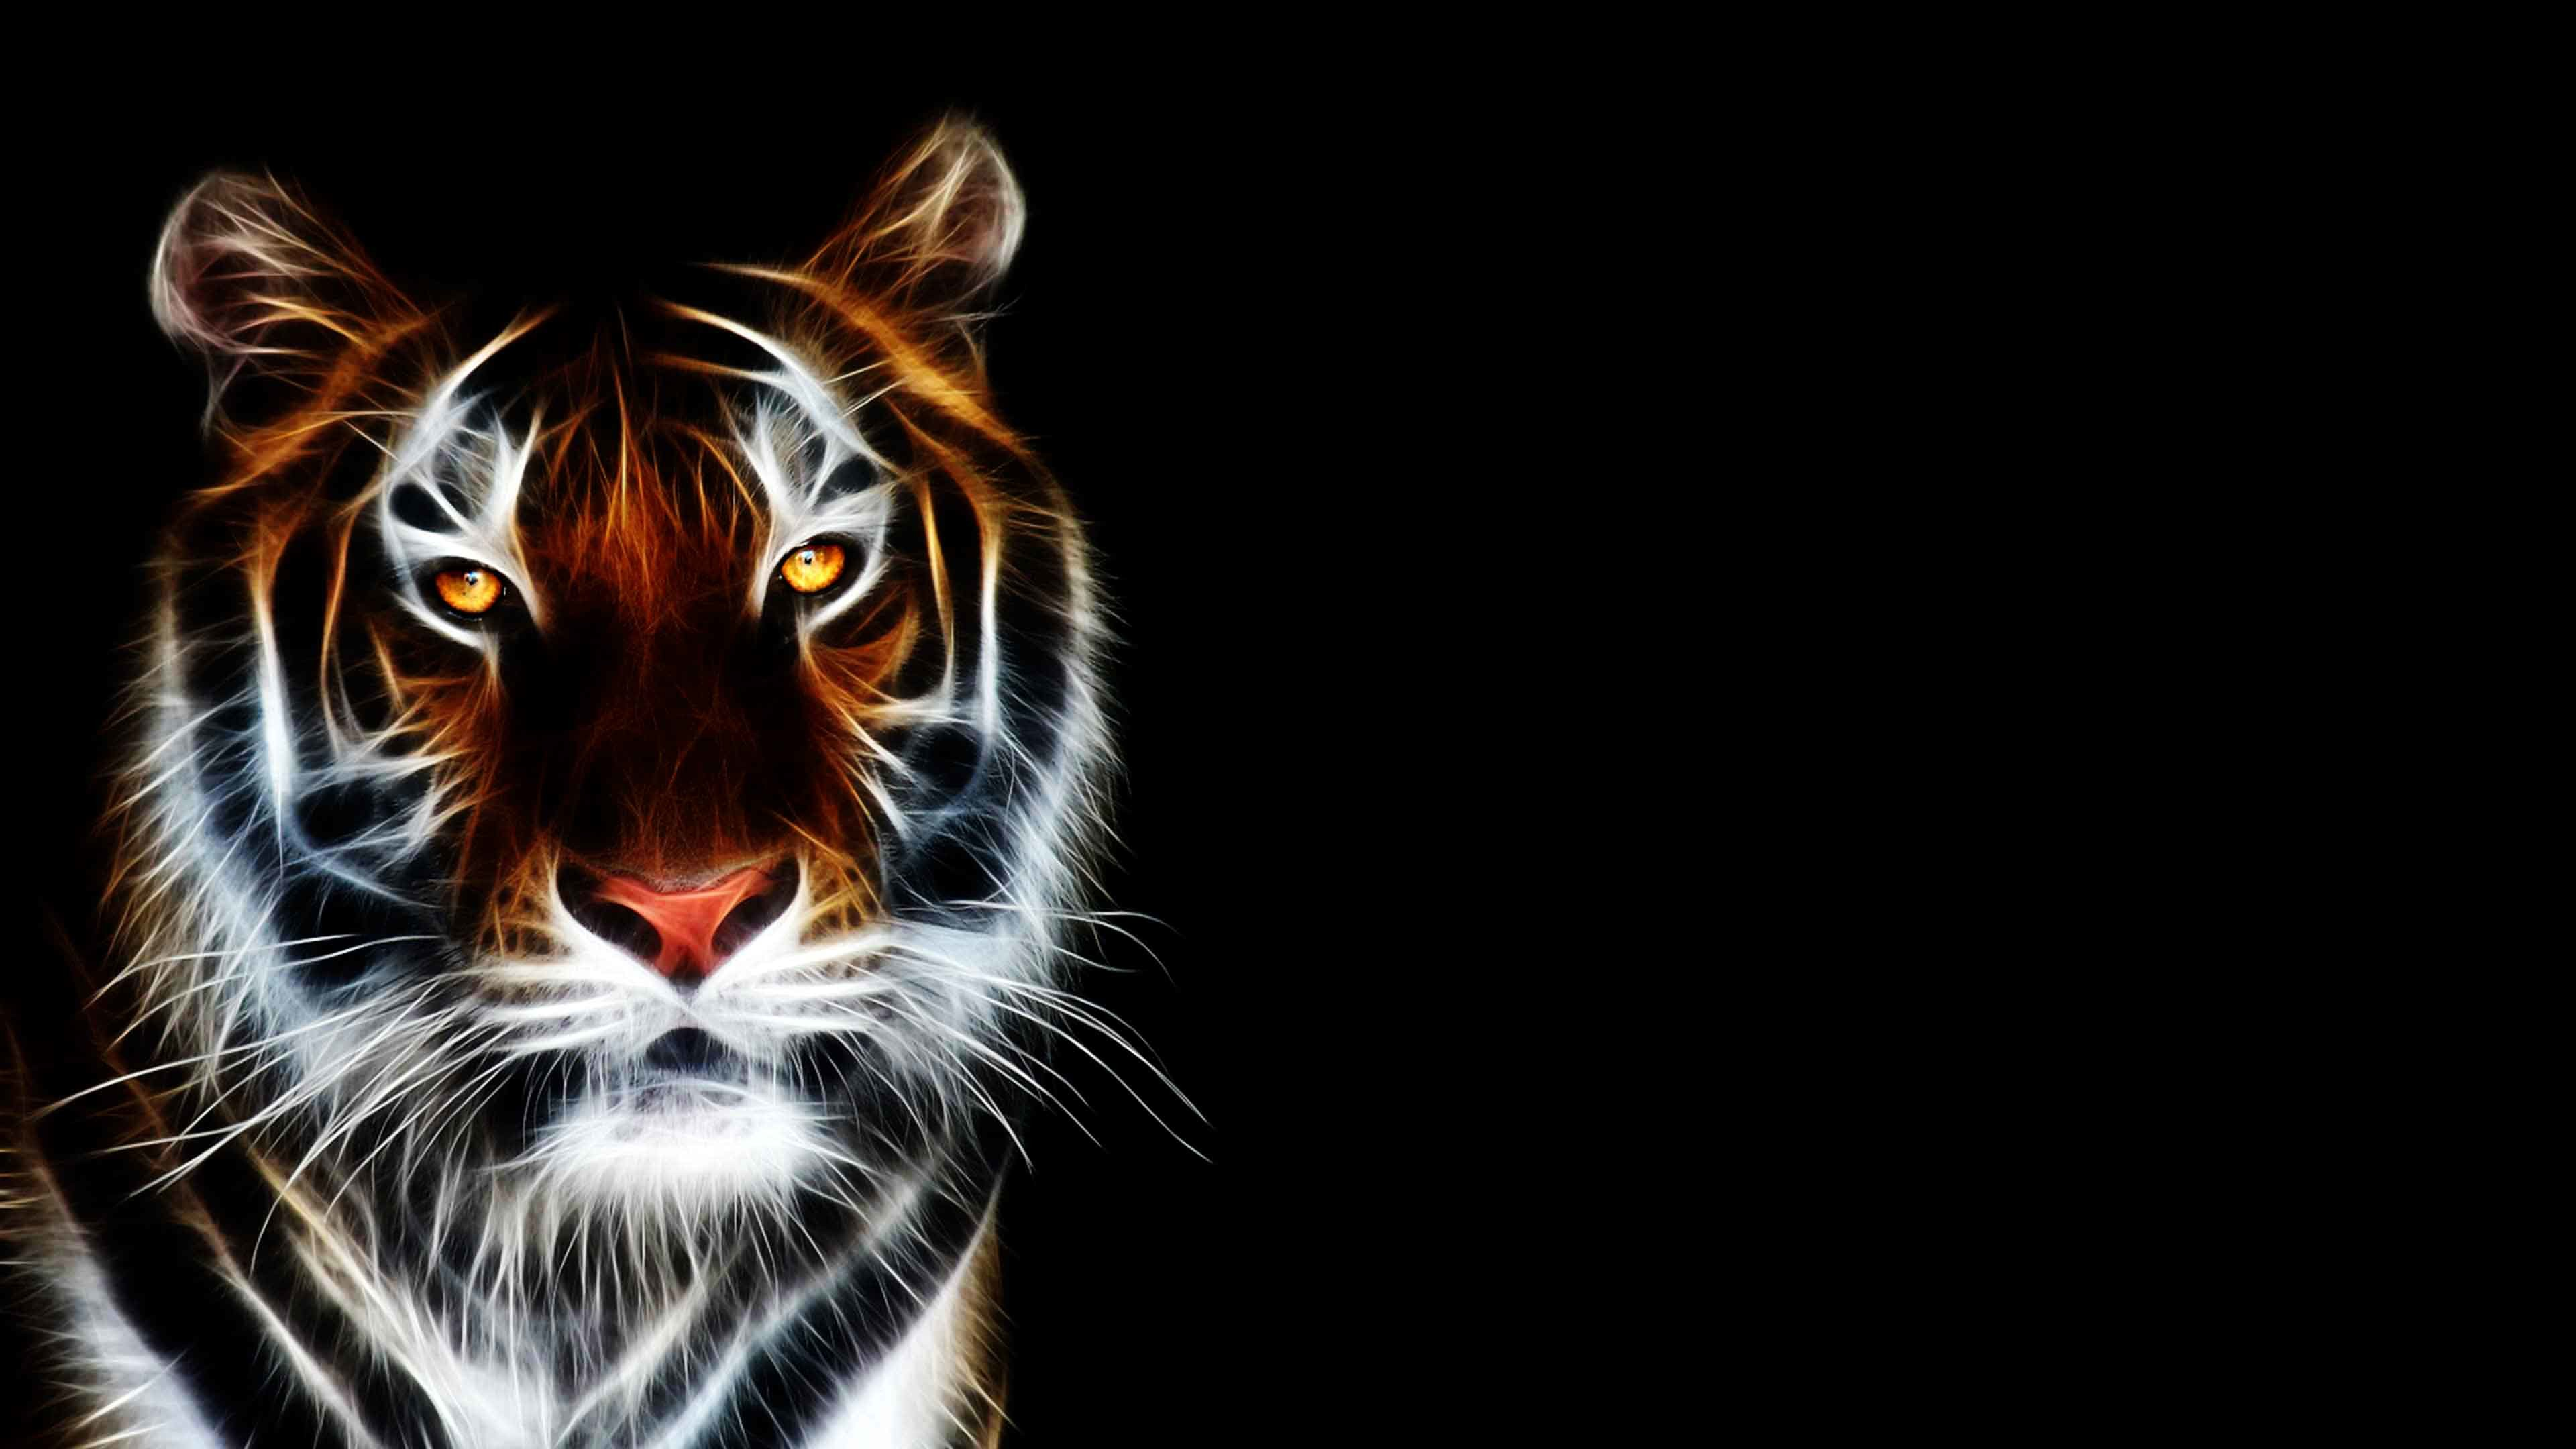 … 3d Animated Tiger Wallpapers | 3d wallpaper HD